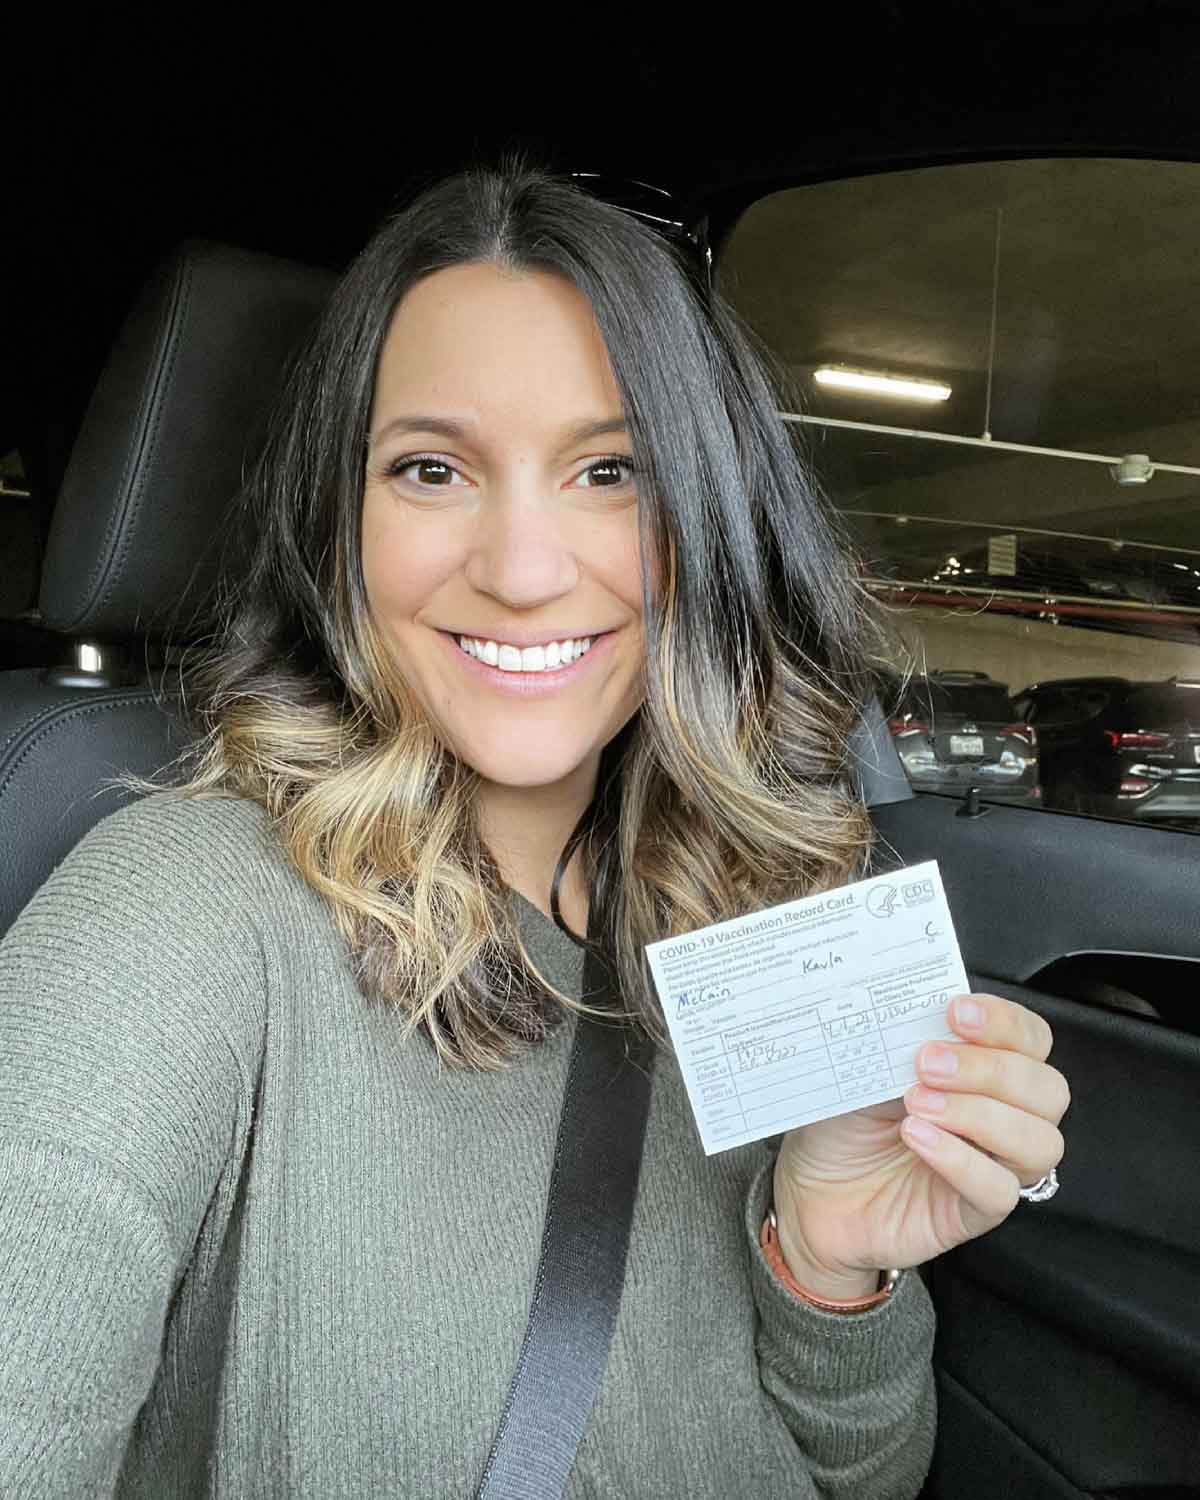 A woman smiling holding her vaccine card in the car